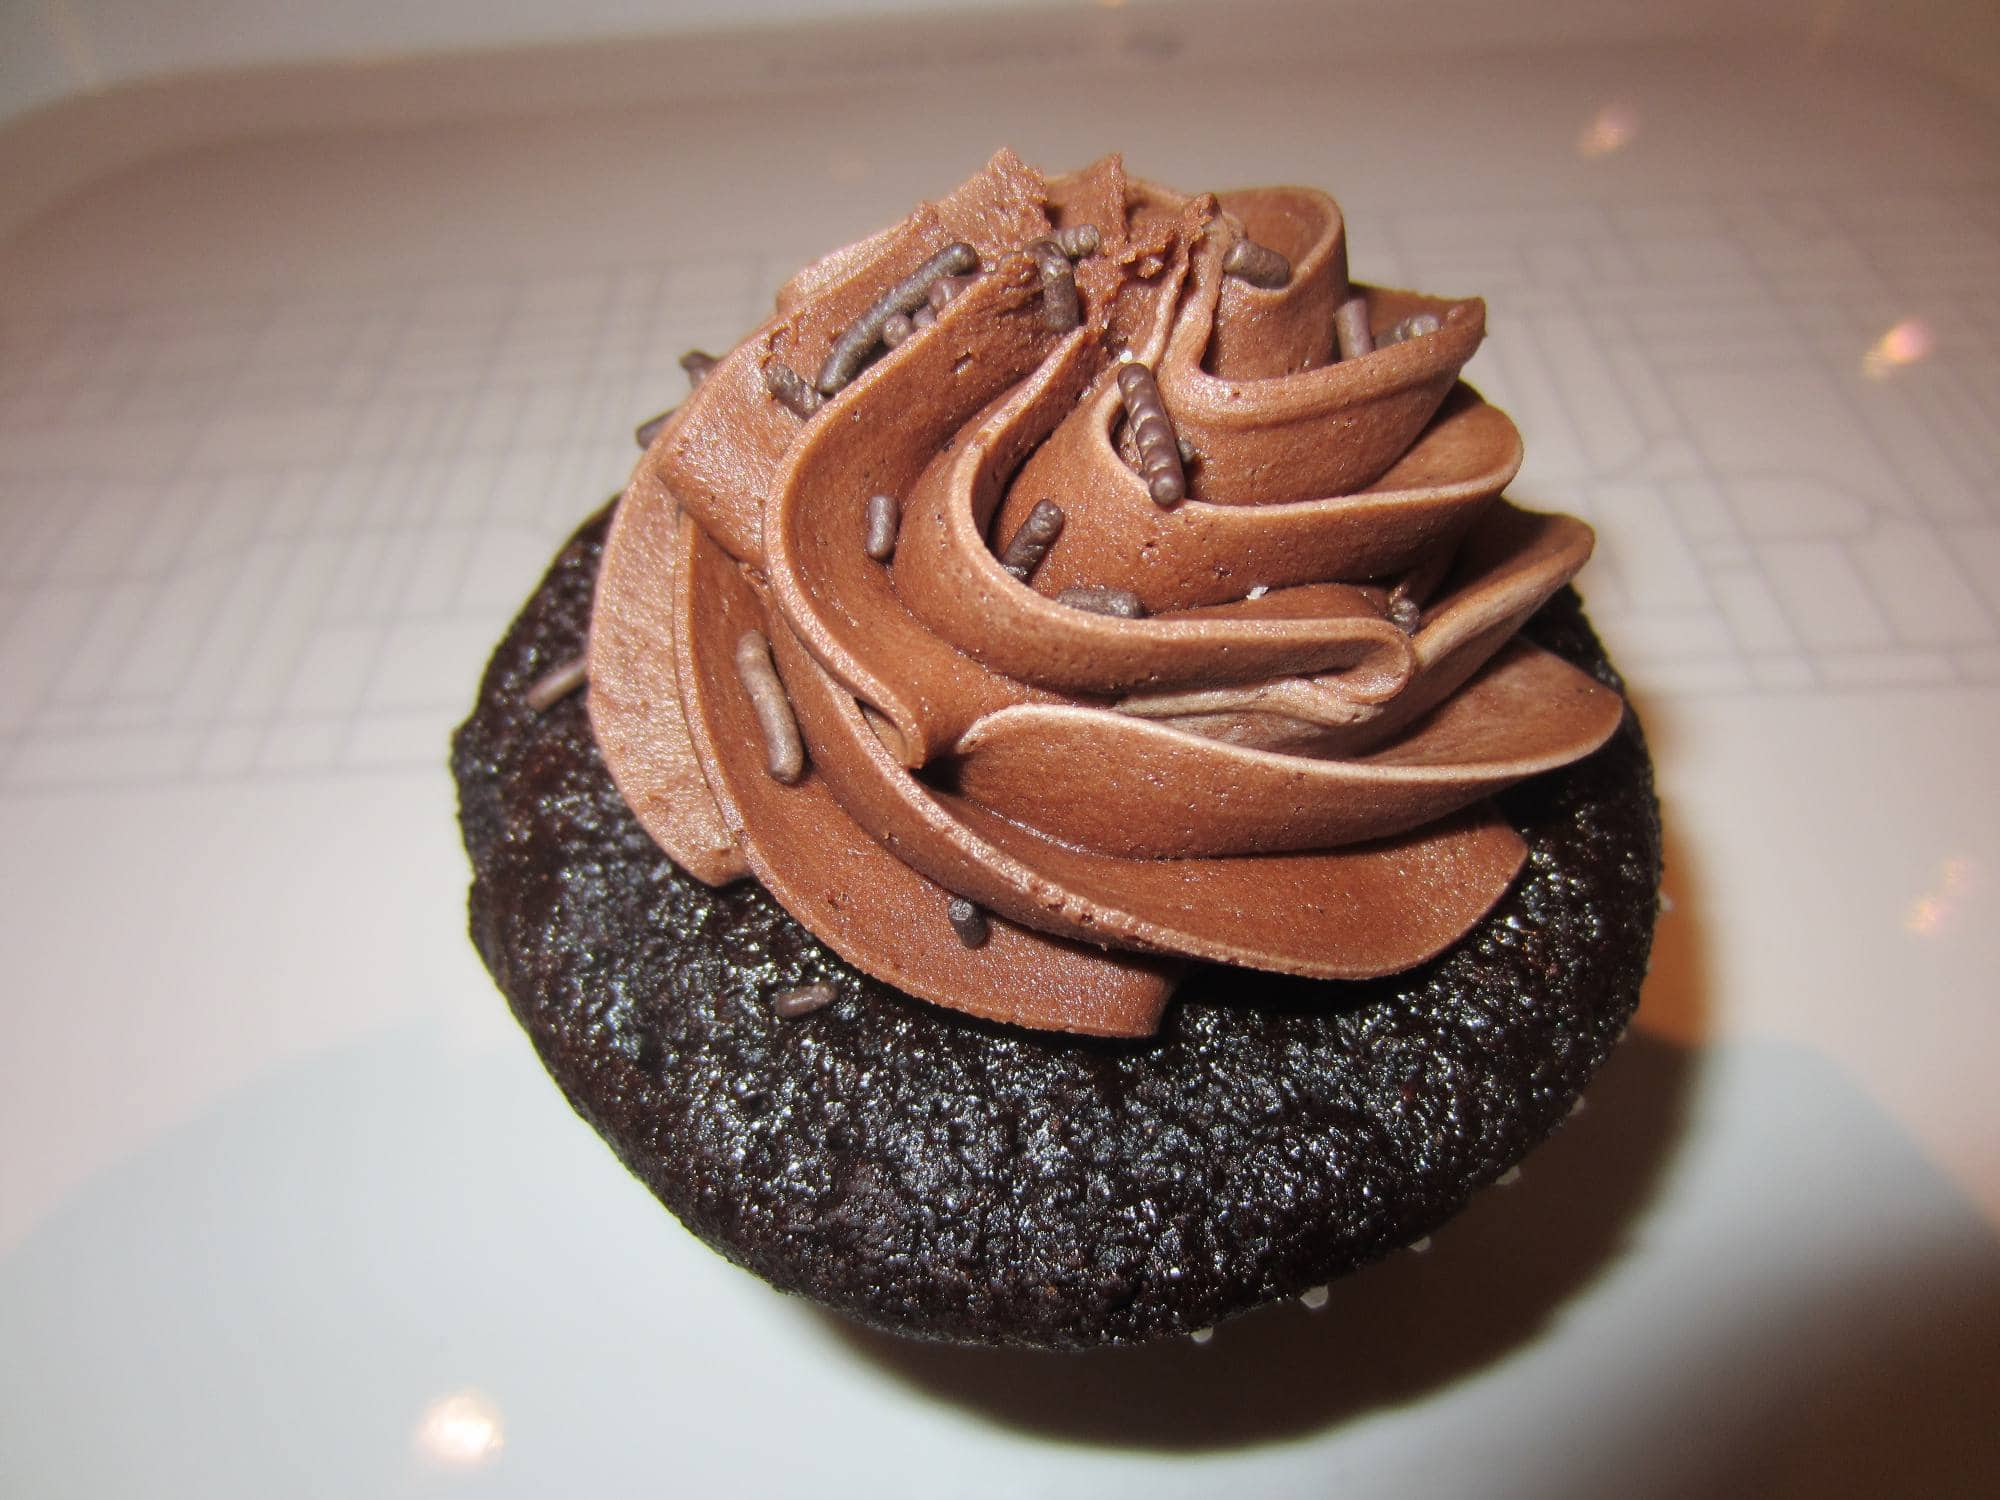 Vegan Cupcake at the Urban Herbivore